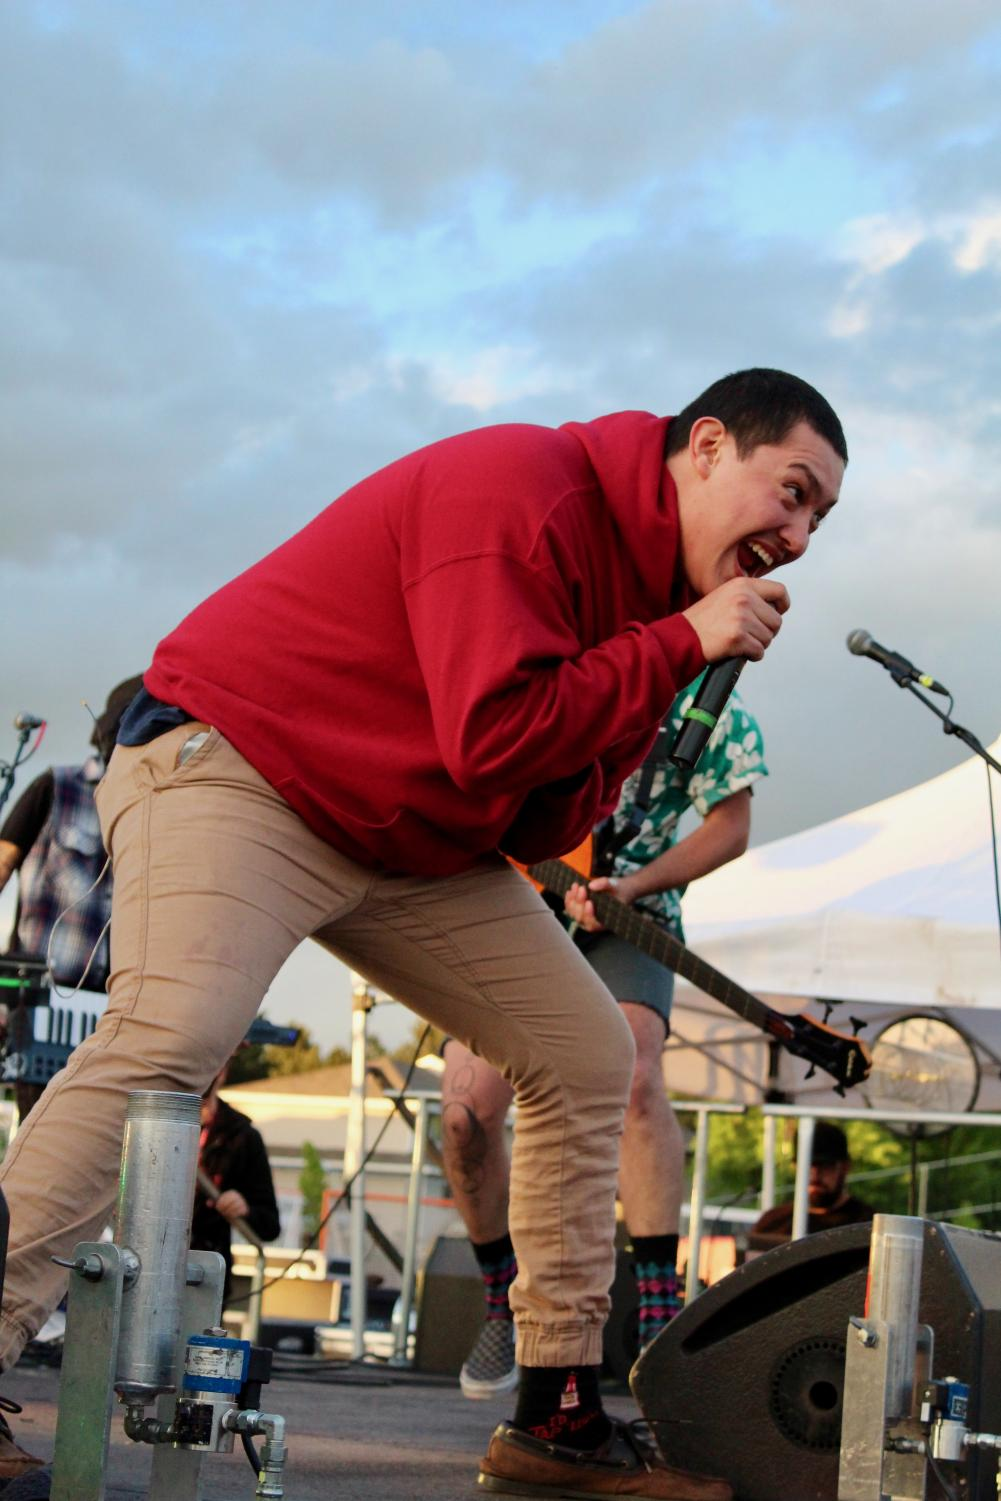 Hobo Johnson was the main performer at Wild Fest. They came on stage at 8 p.m. and played several of their songs for students, who sang along. Wild Fest was a part of Student Appreciation Day, which for the first time, was held at the Recreation Sports Complex